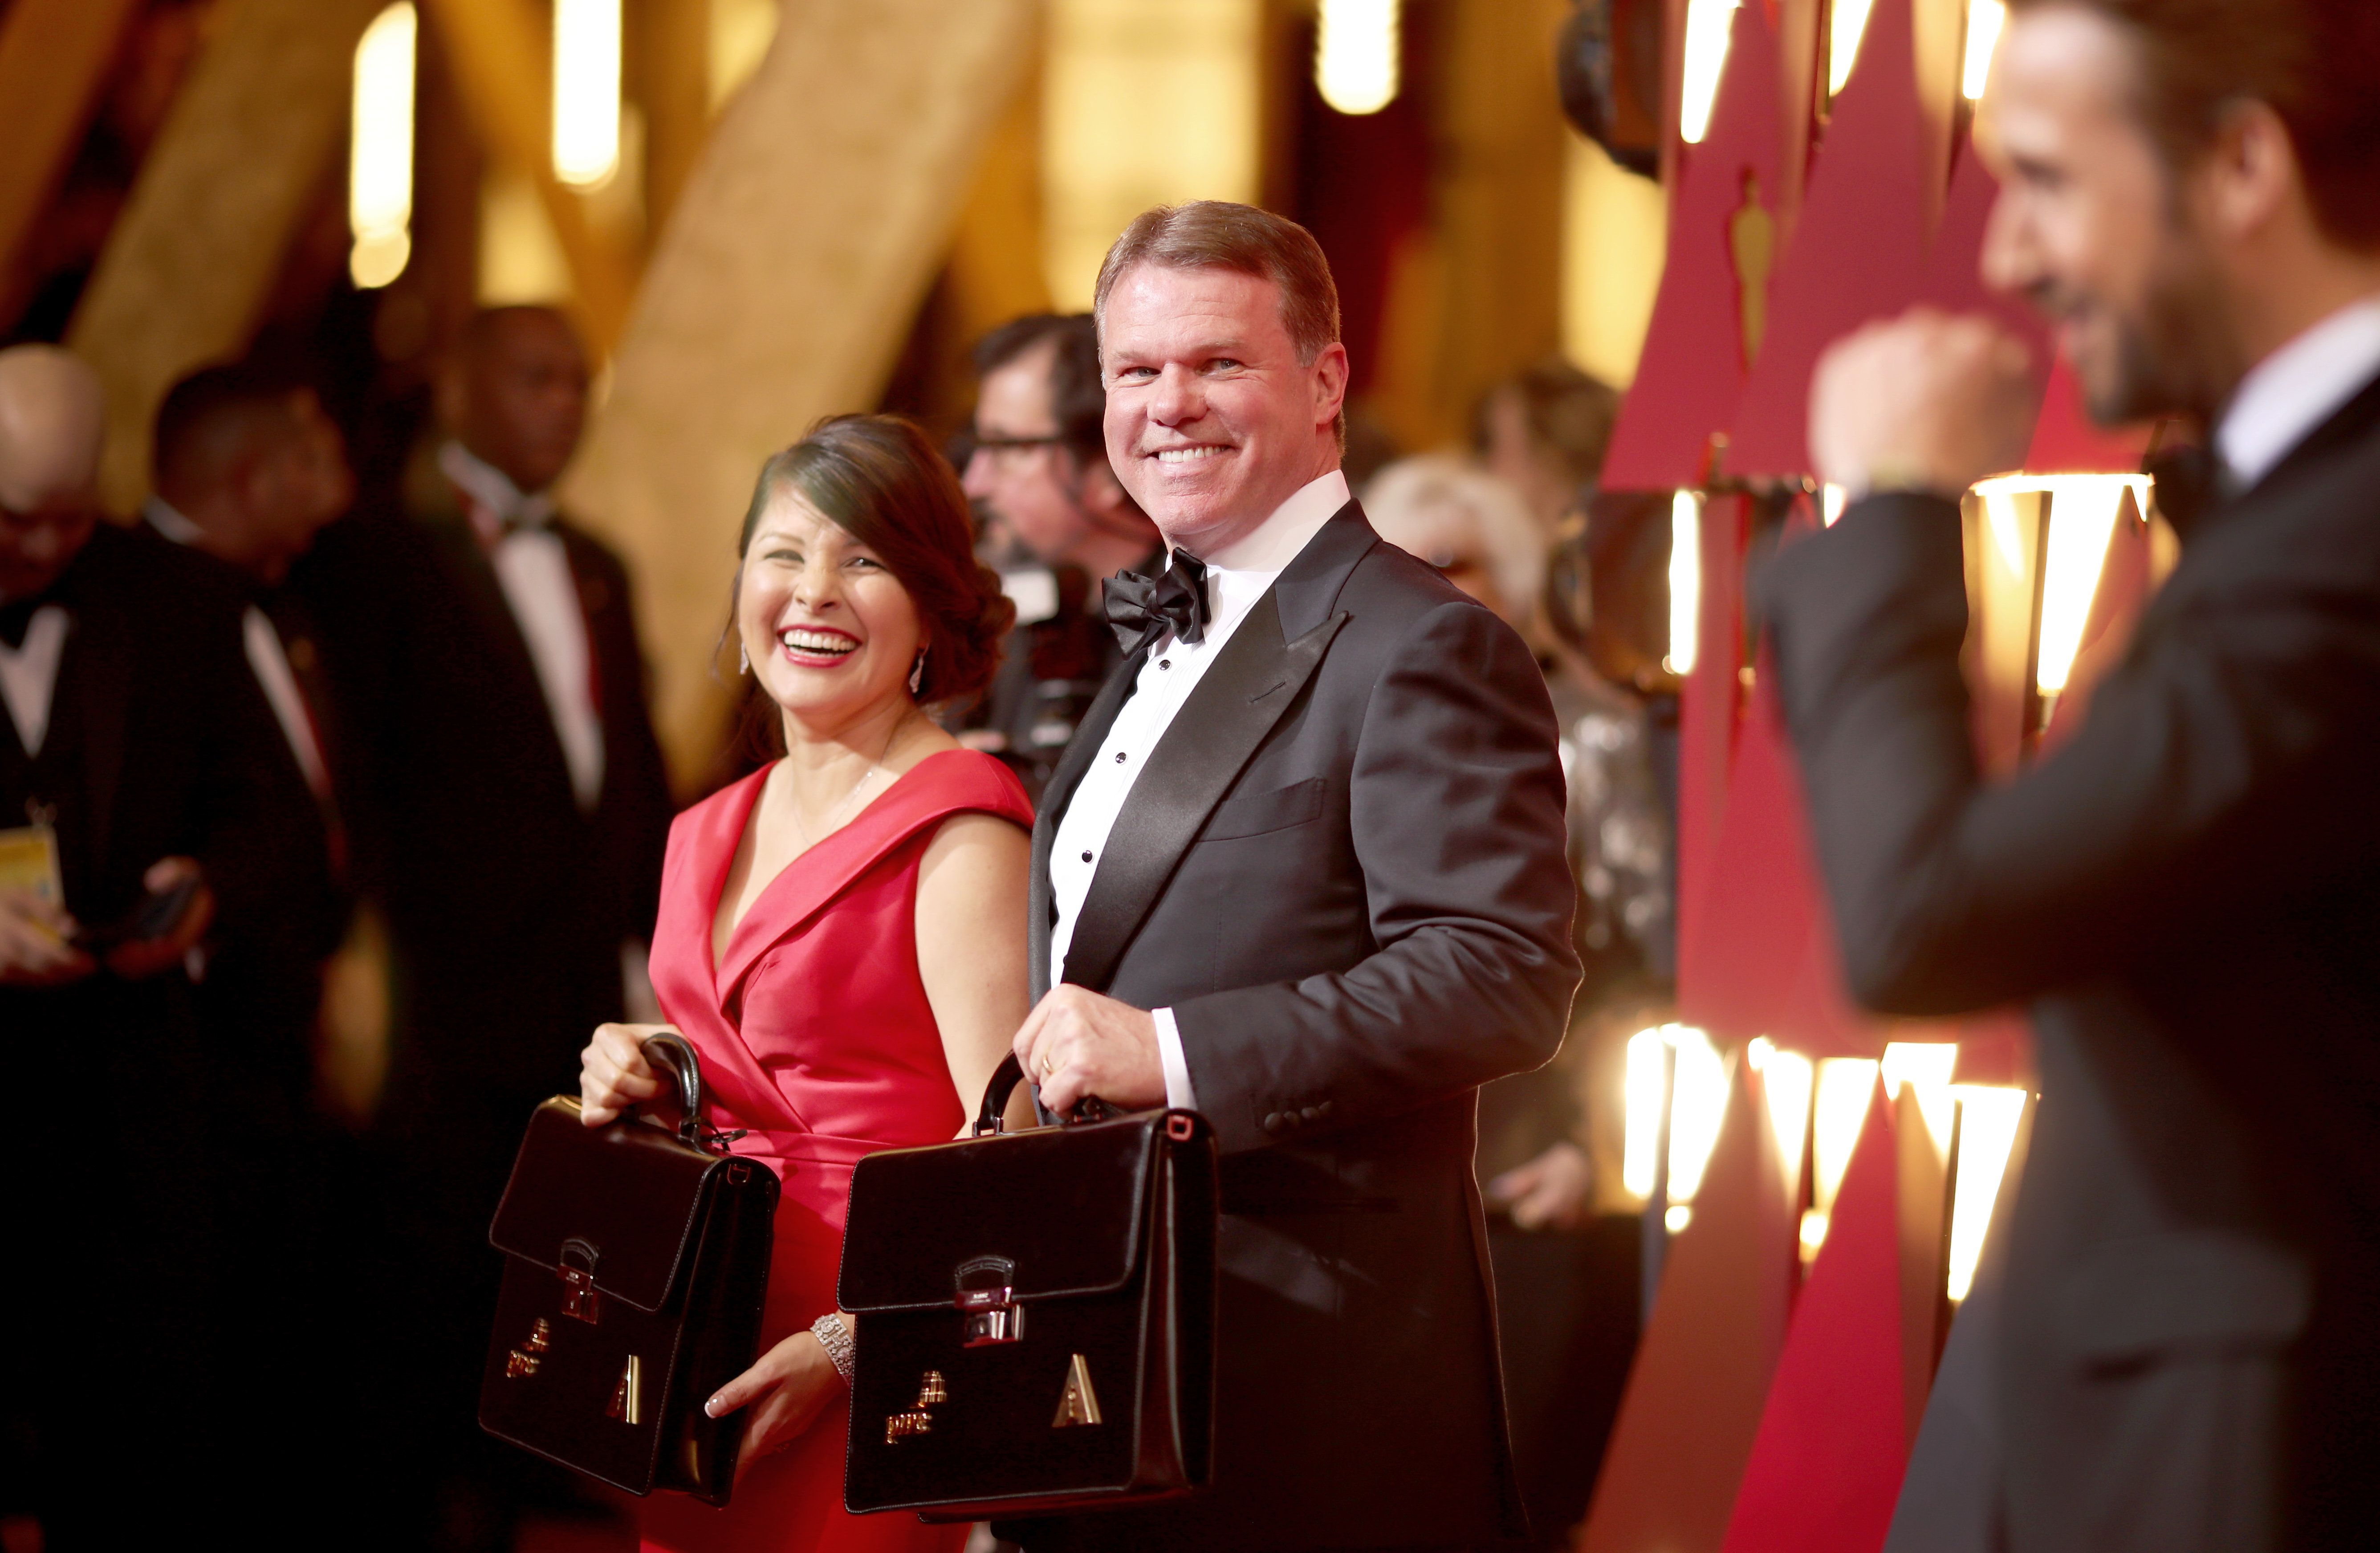 The Two Accountants Responsible For The Oscars Fail Will Never Work For The Academy Awards